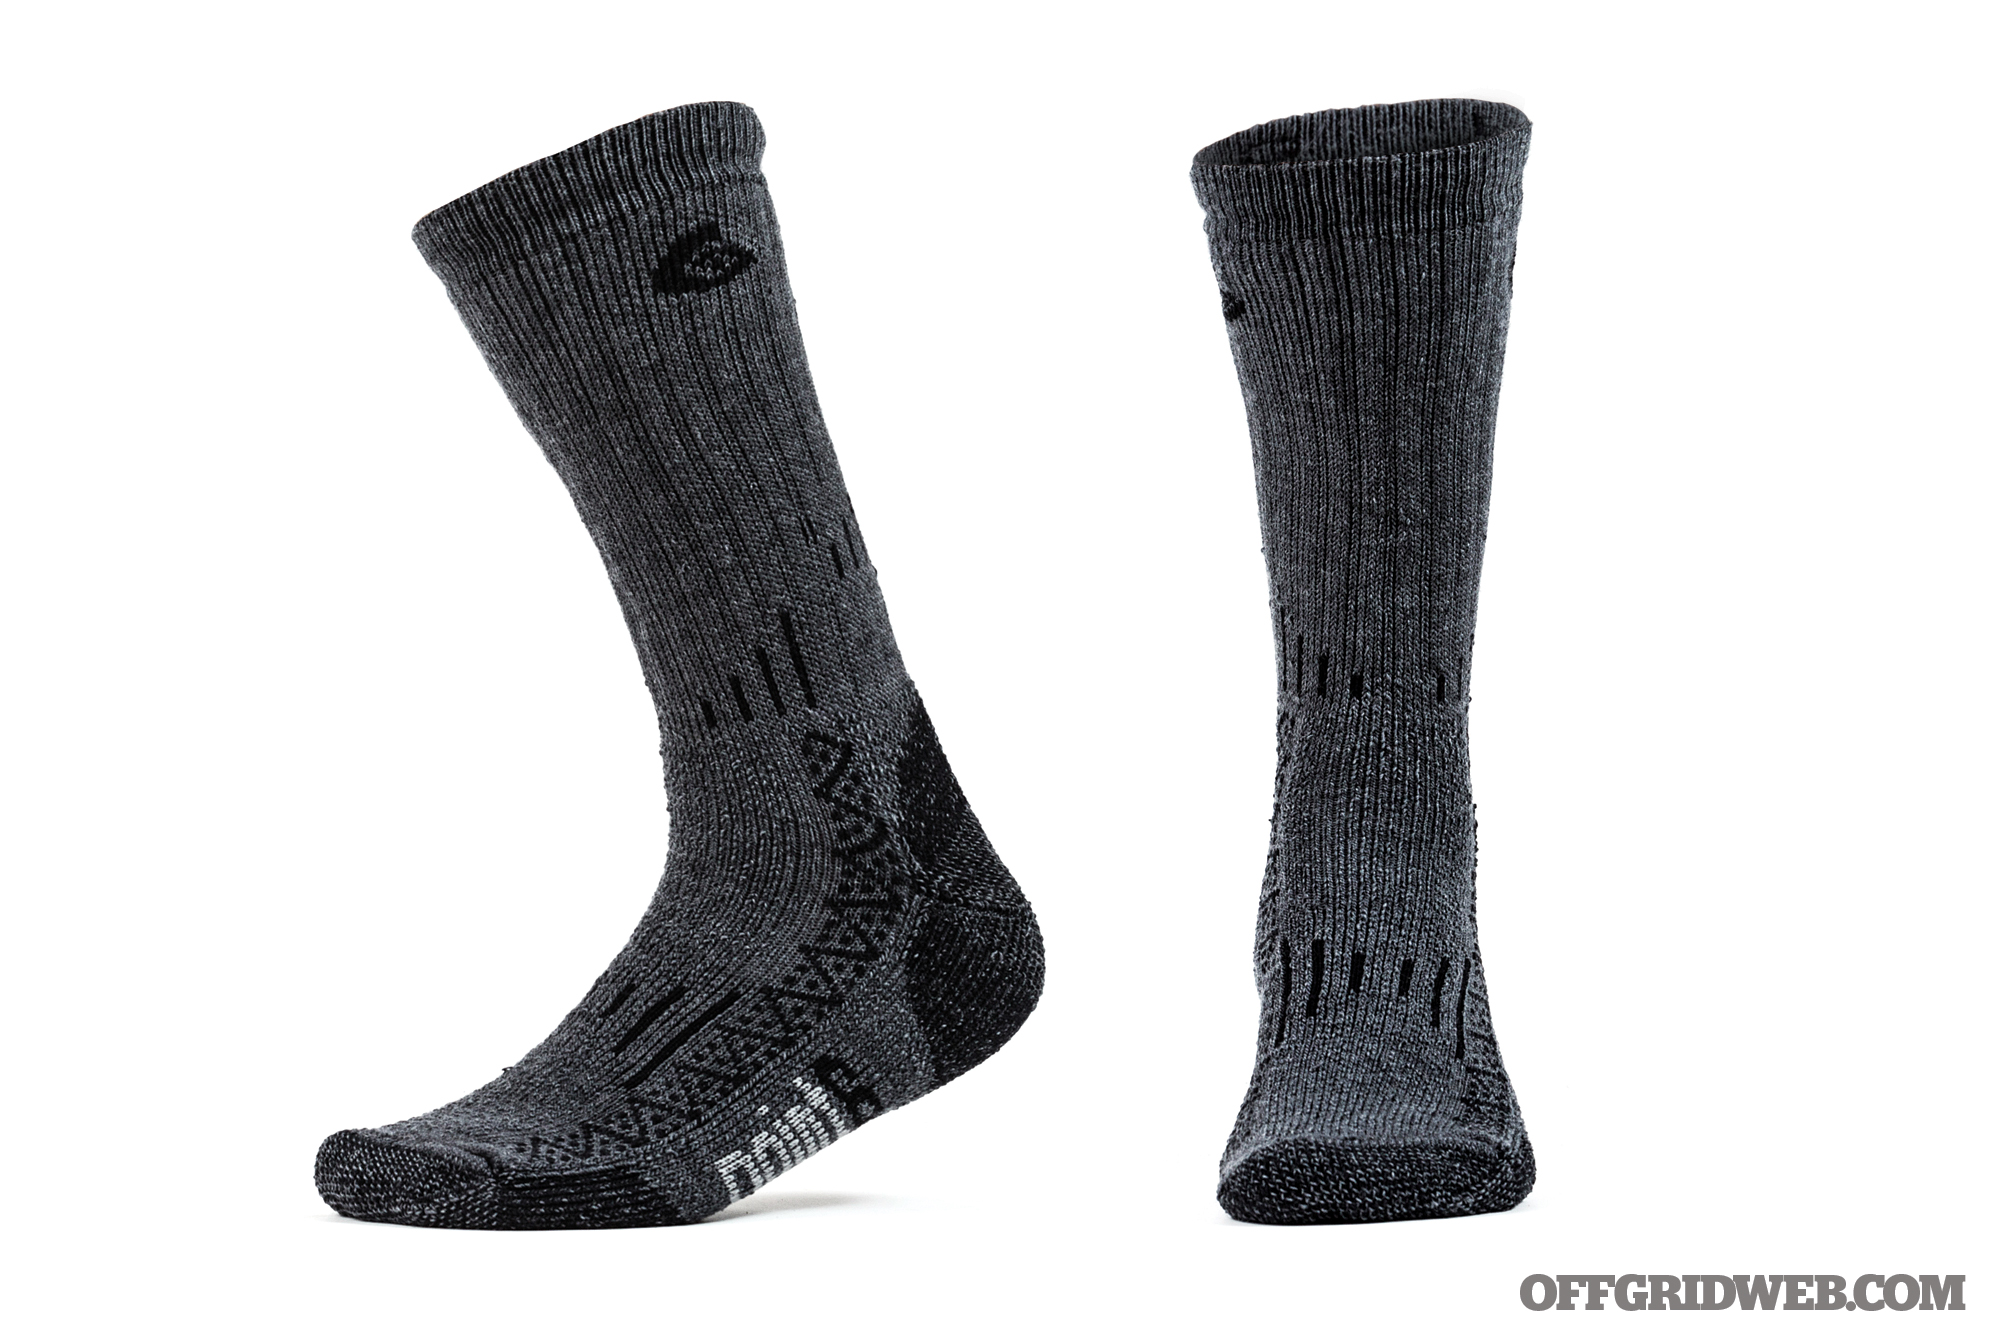 Cold weather socks wool footwear boots apparel frostbite clothing survival 12